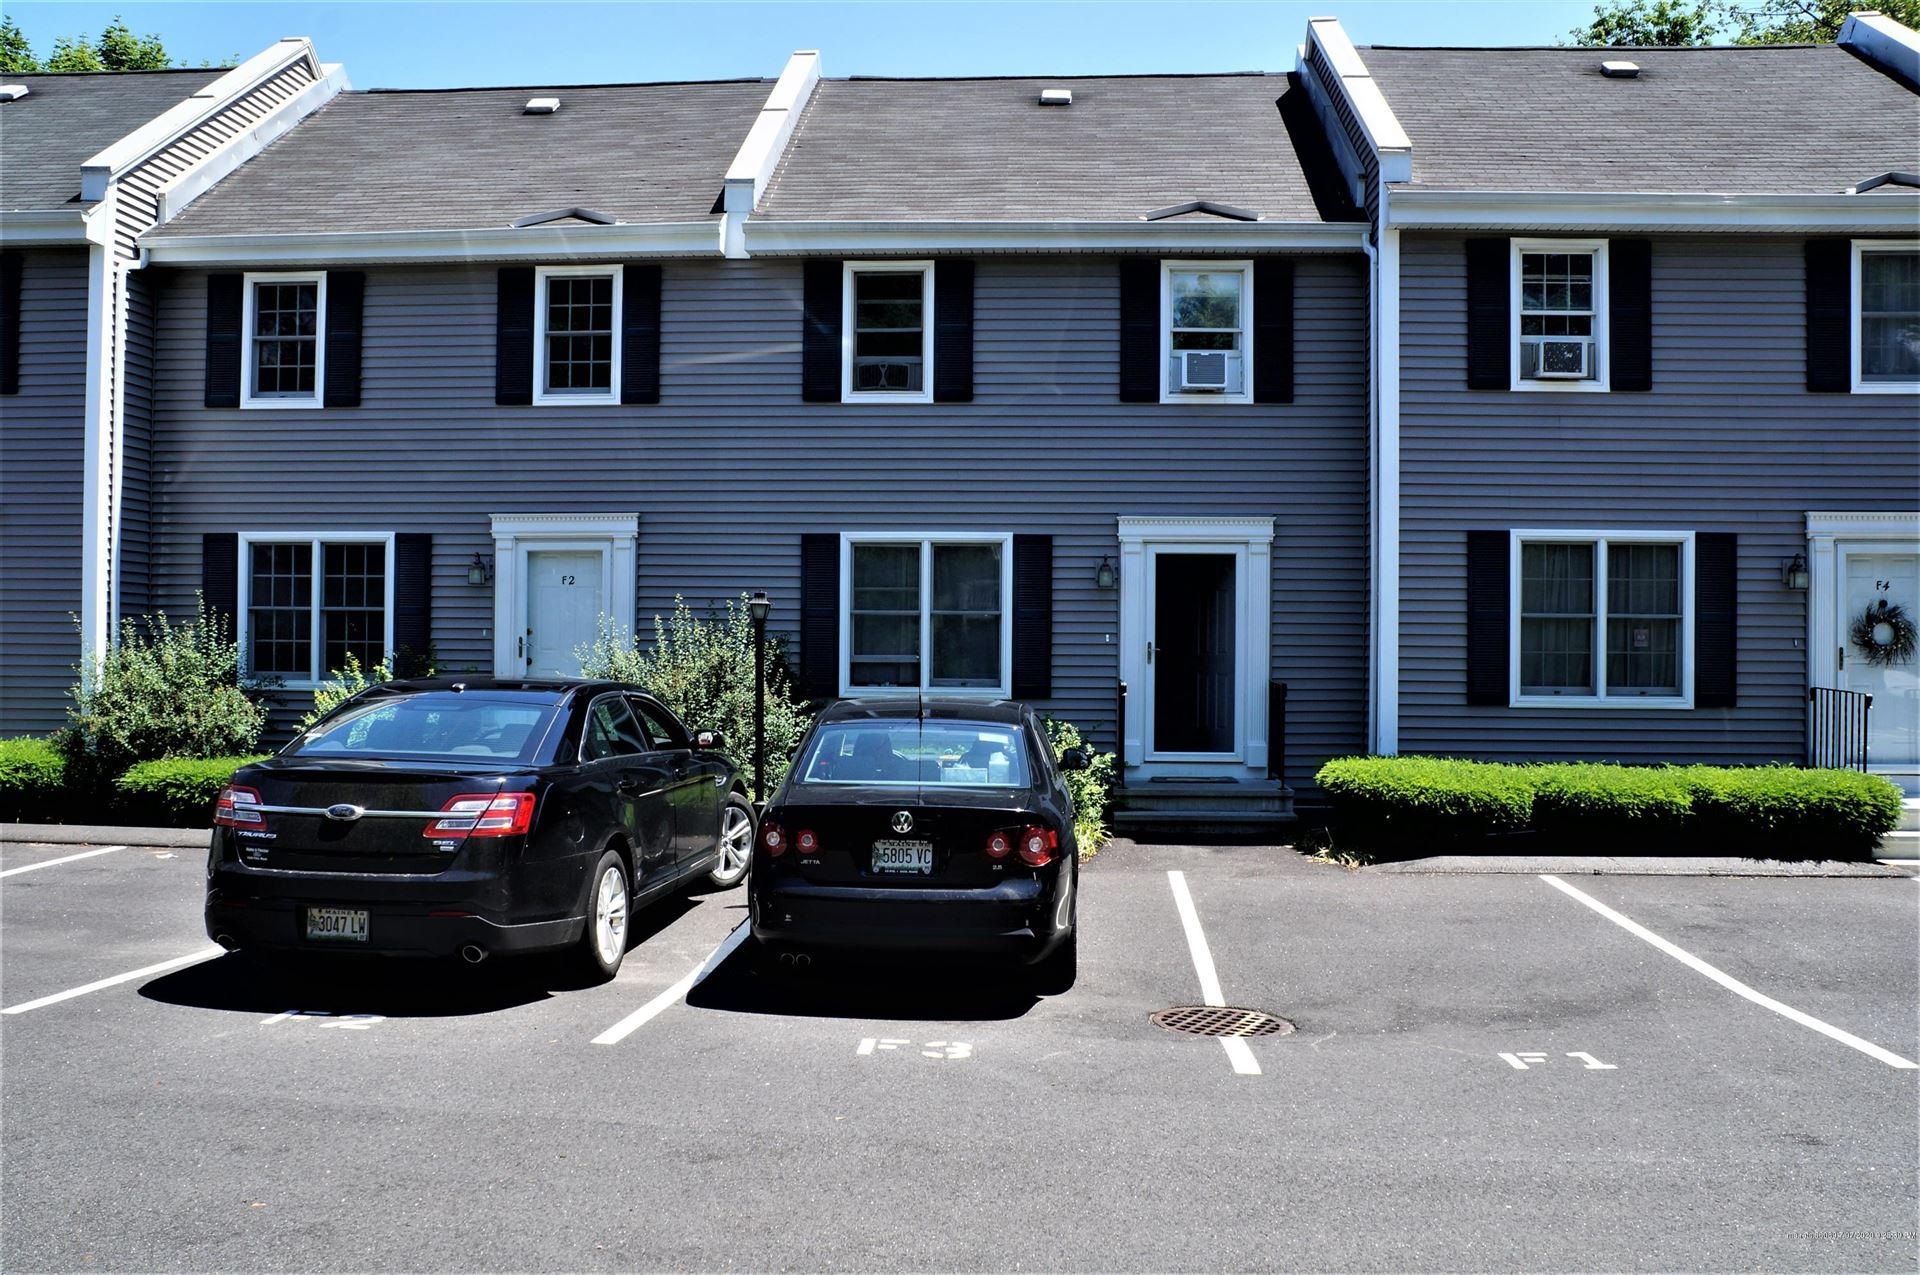 Photo of 6 Clairmont Court #F3, Portland, ME 04101 (MLS # 1459406)